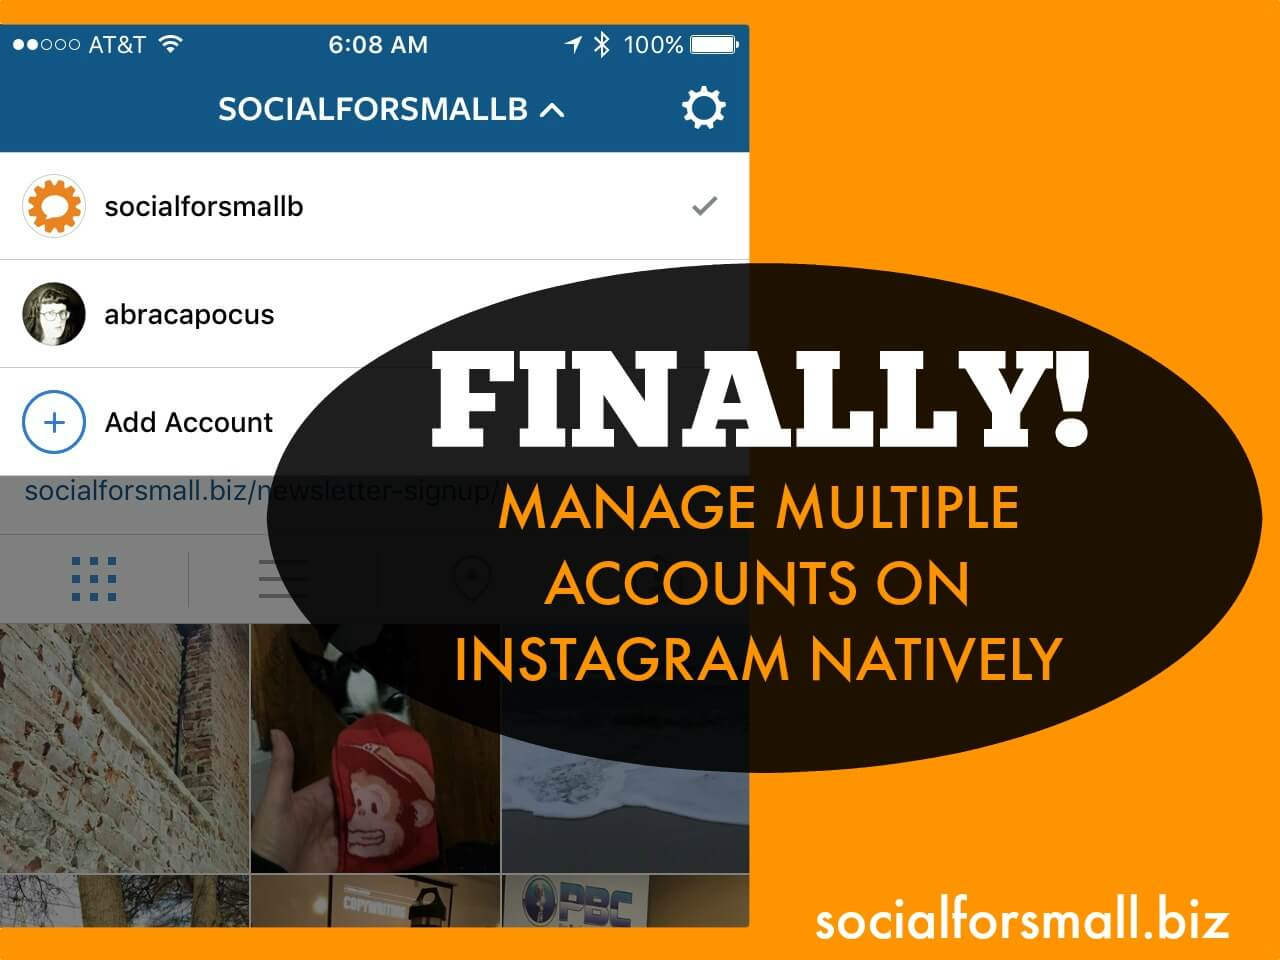 manage multiple accounts on instagram natively